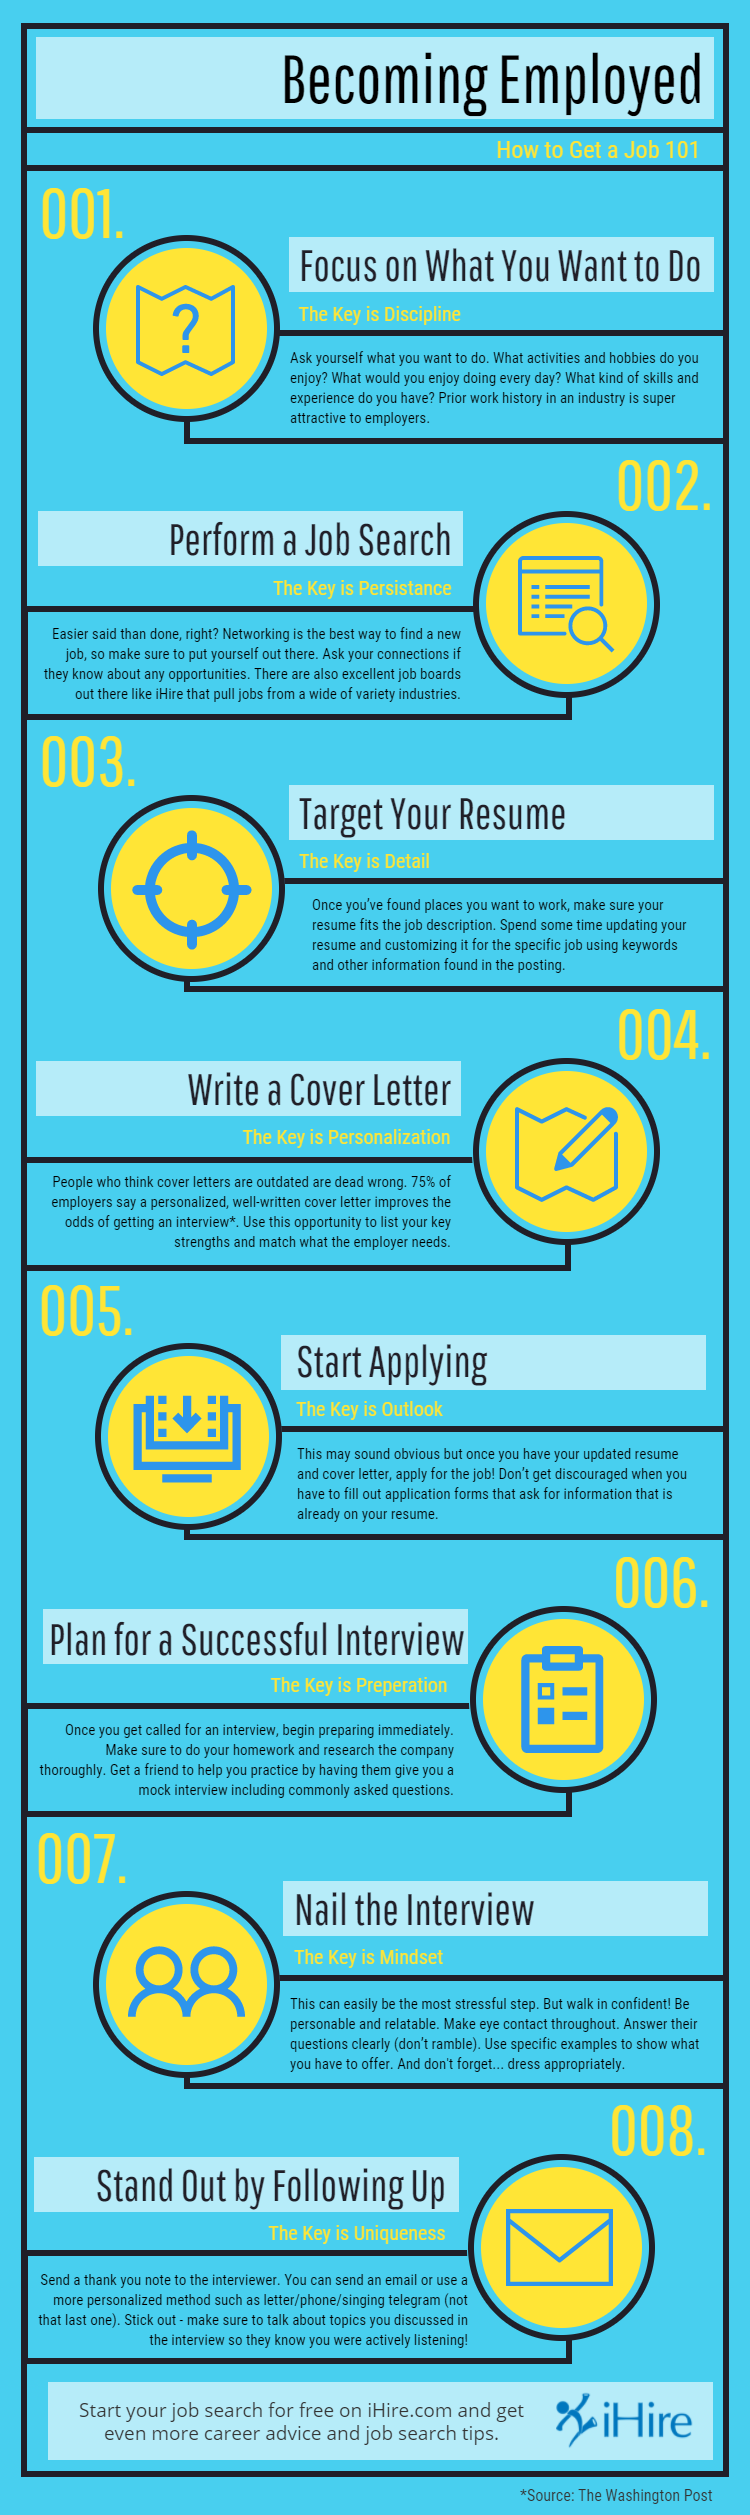 Getting employed 101 infographic